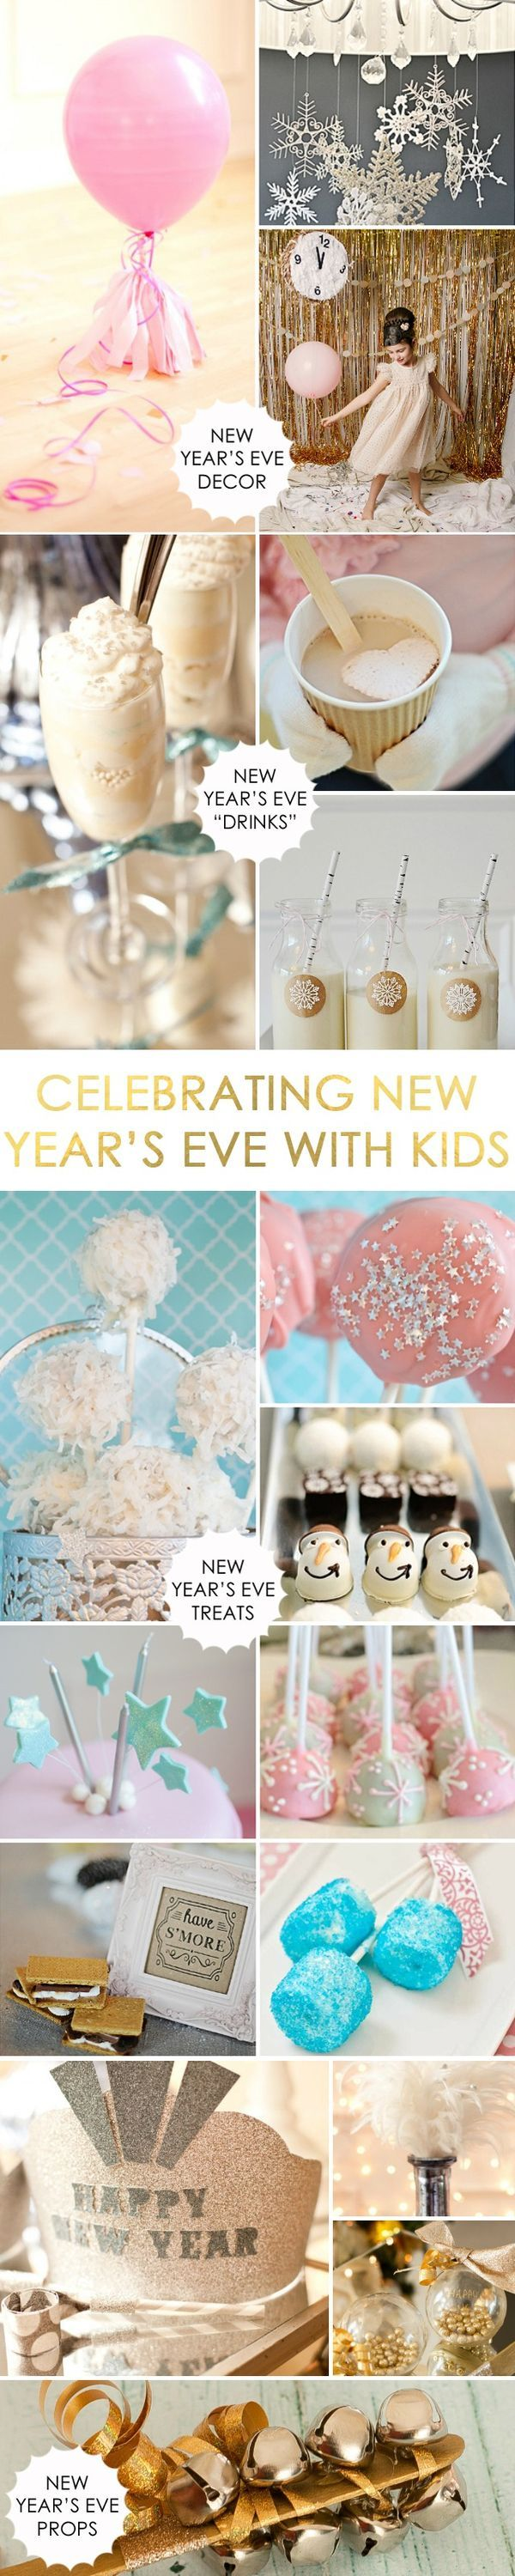 Ideas for Celebrating New Years Eve with Kids - #NYE